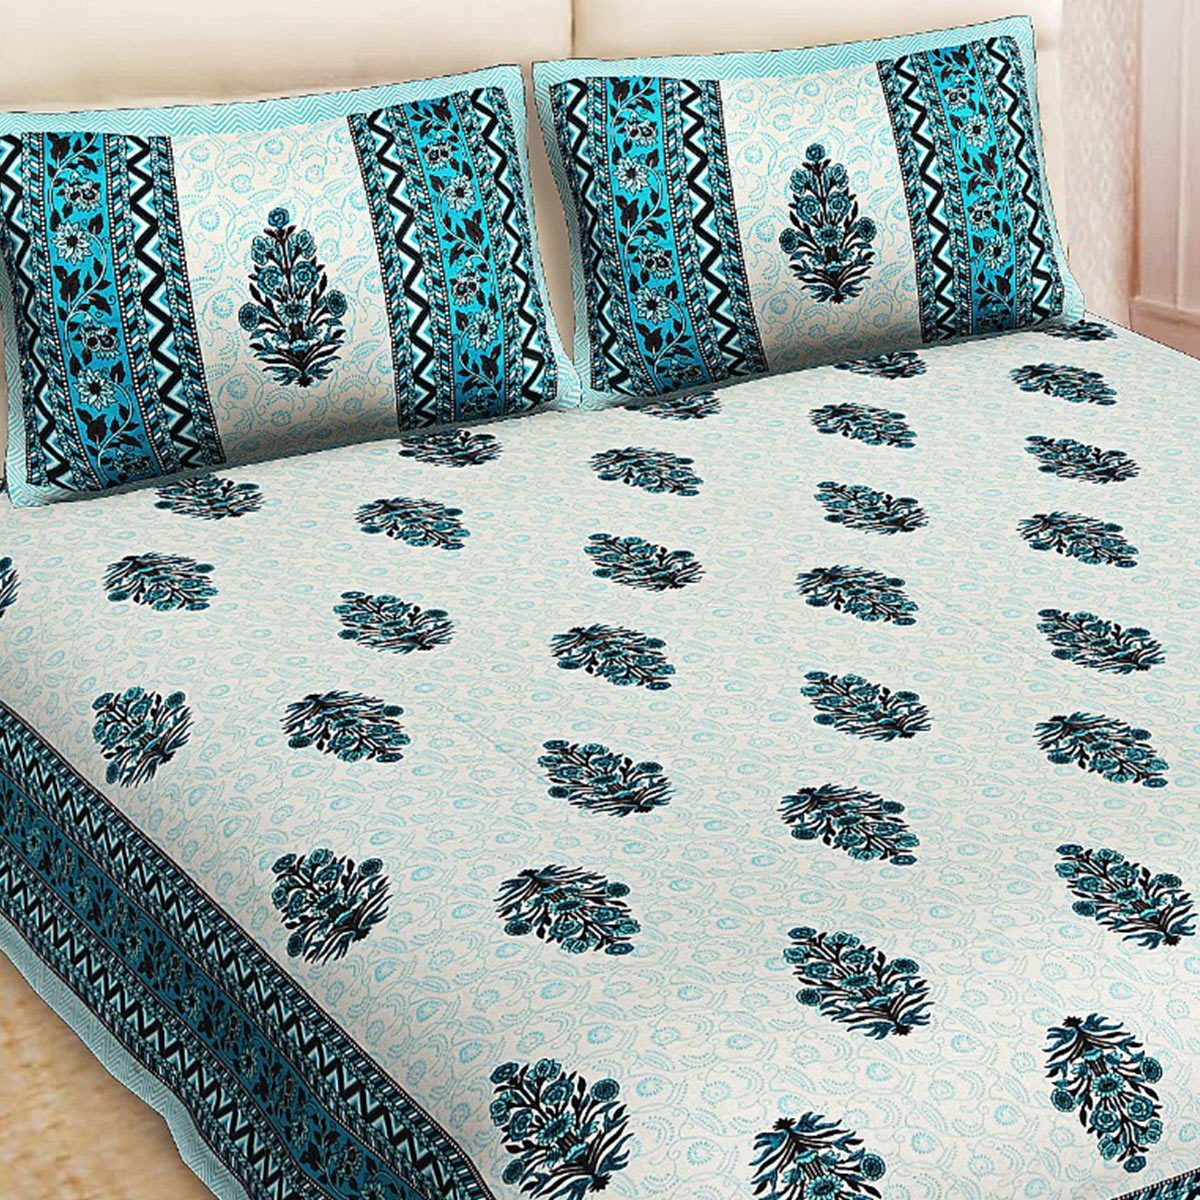 JK Enterprises - Rajasthani Jaipuri Cotton Print King Size Double Bed Sheets With Two Pillow Covers